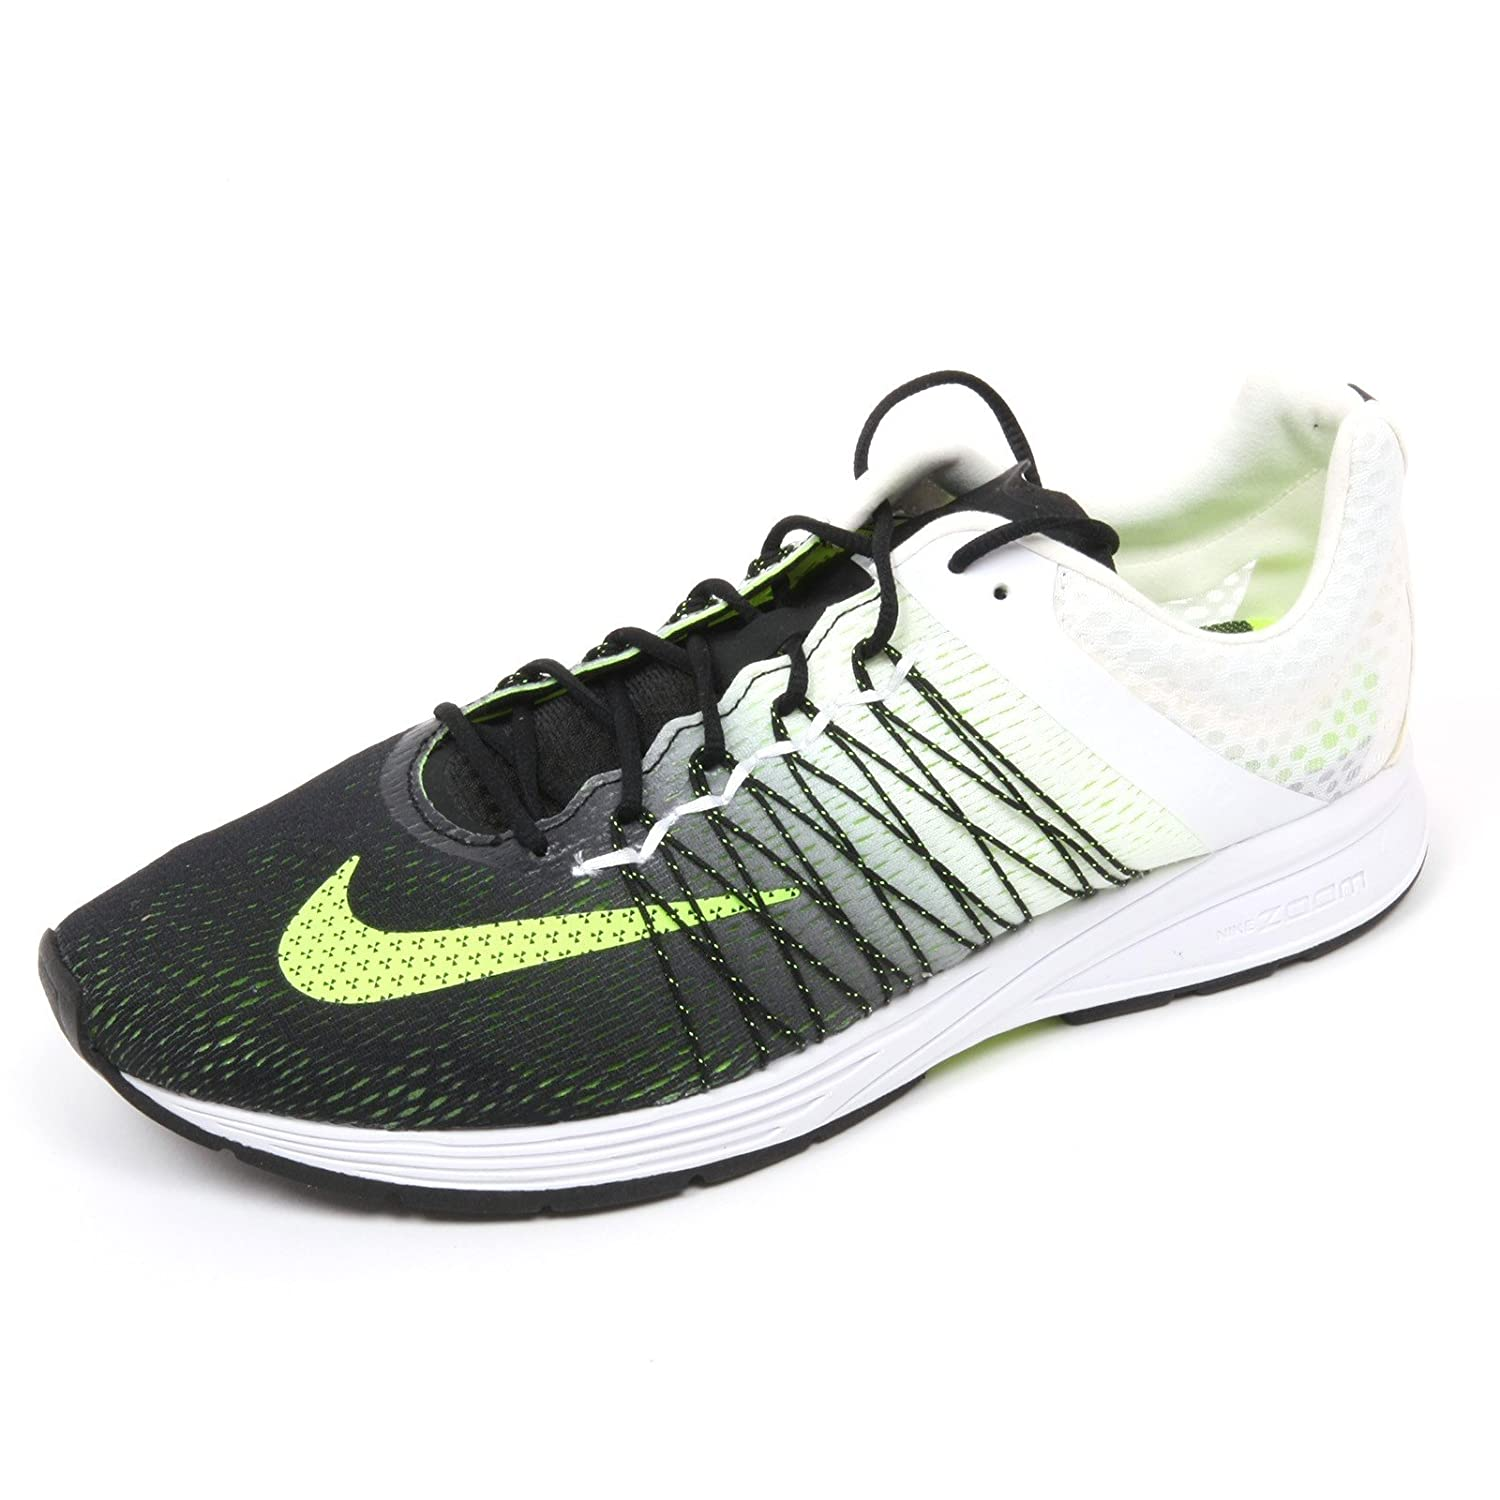 81cf38388a4 Nike Unisex Adults  Air Zoom Streak 5 Cp Running Shoes White  Amazon.co.uk   Shoes   Bags